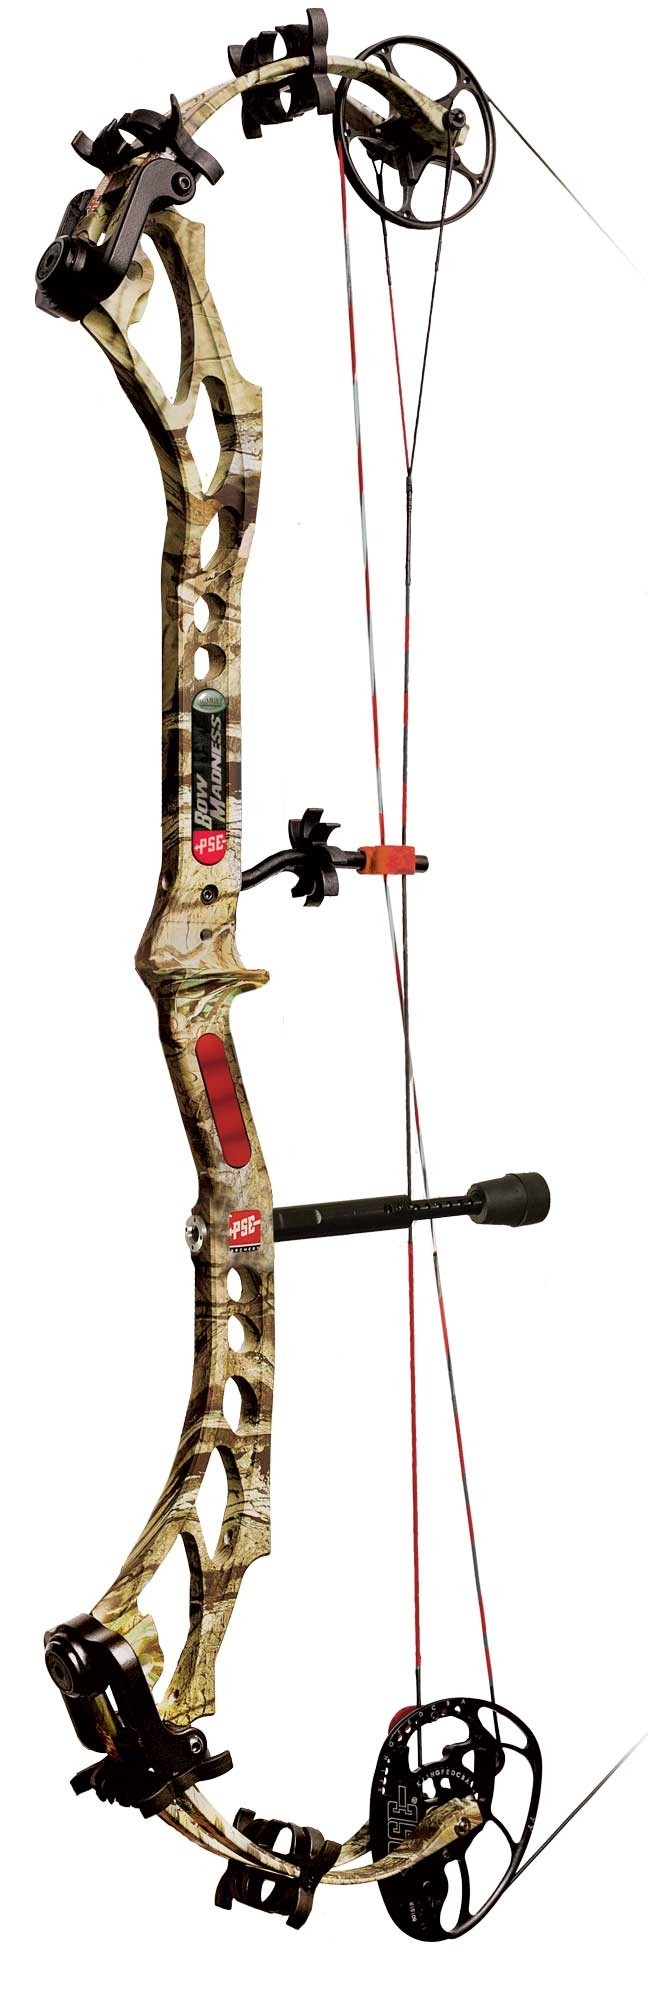 "PSE BOW MADNESS MP XL BOW RH IF 29"" 70# picture"